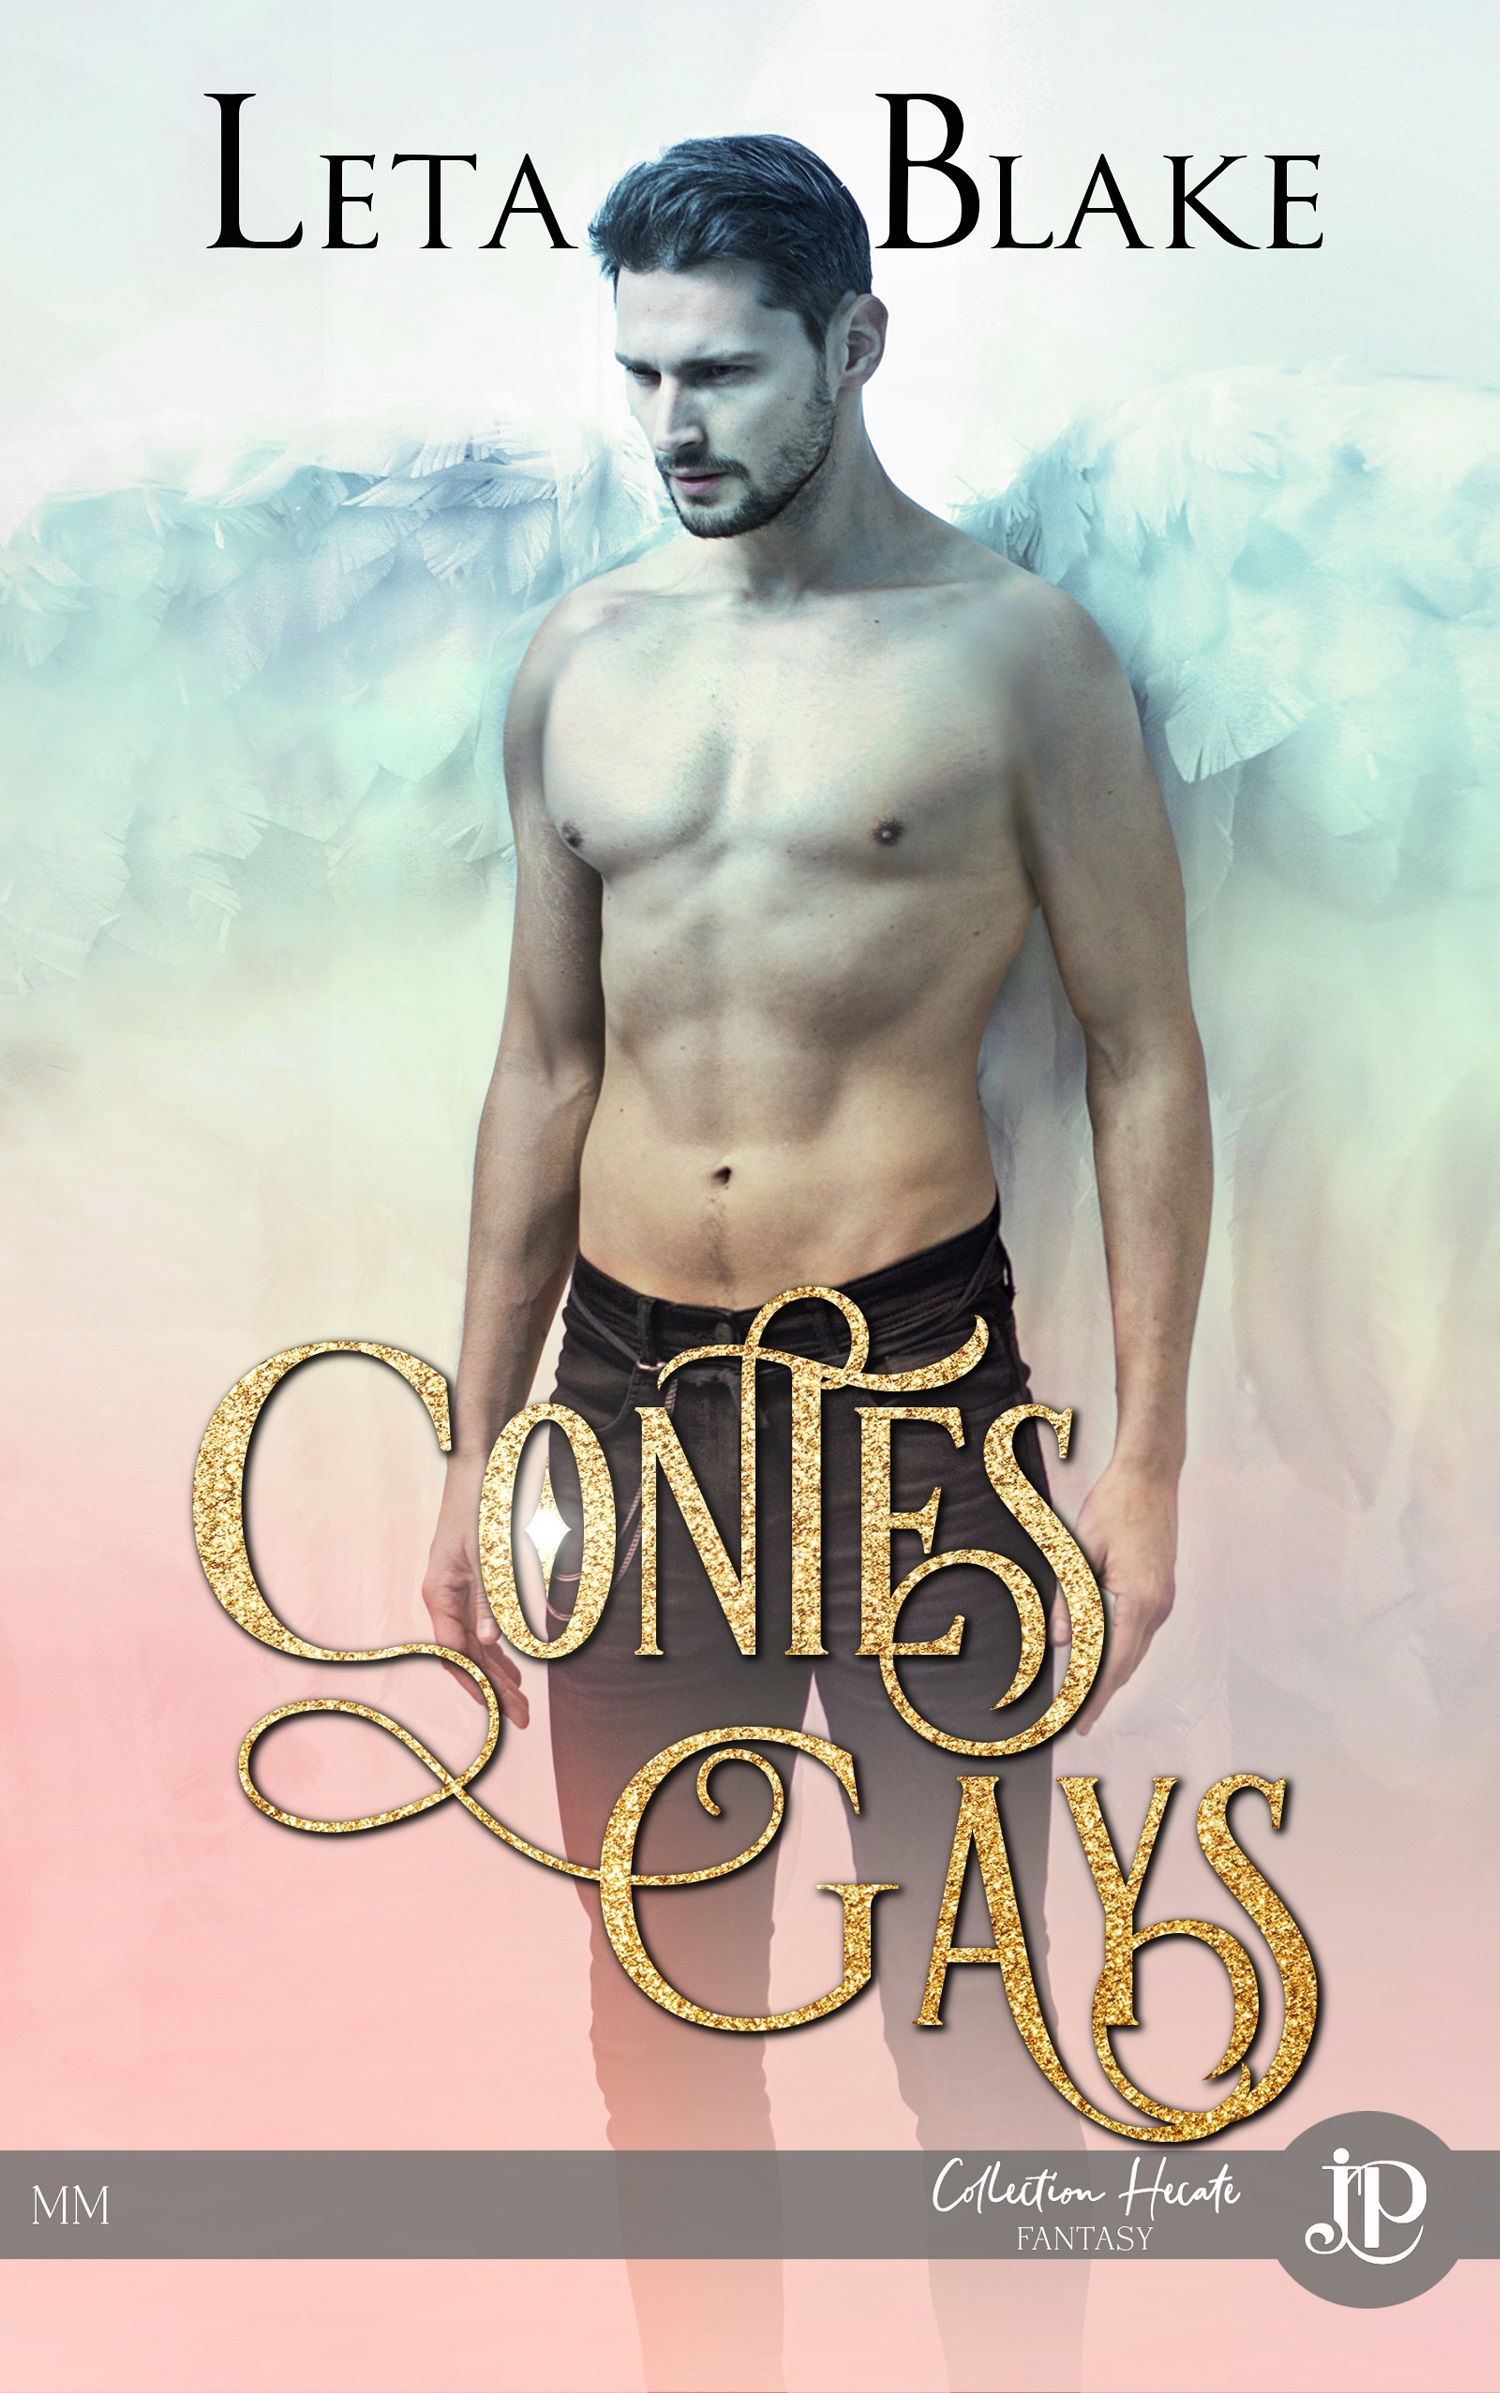 Contes gays